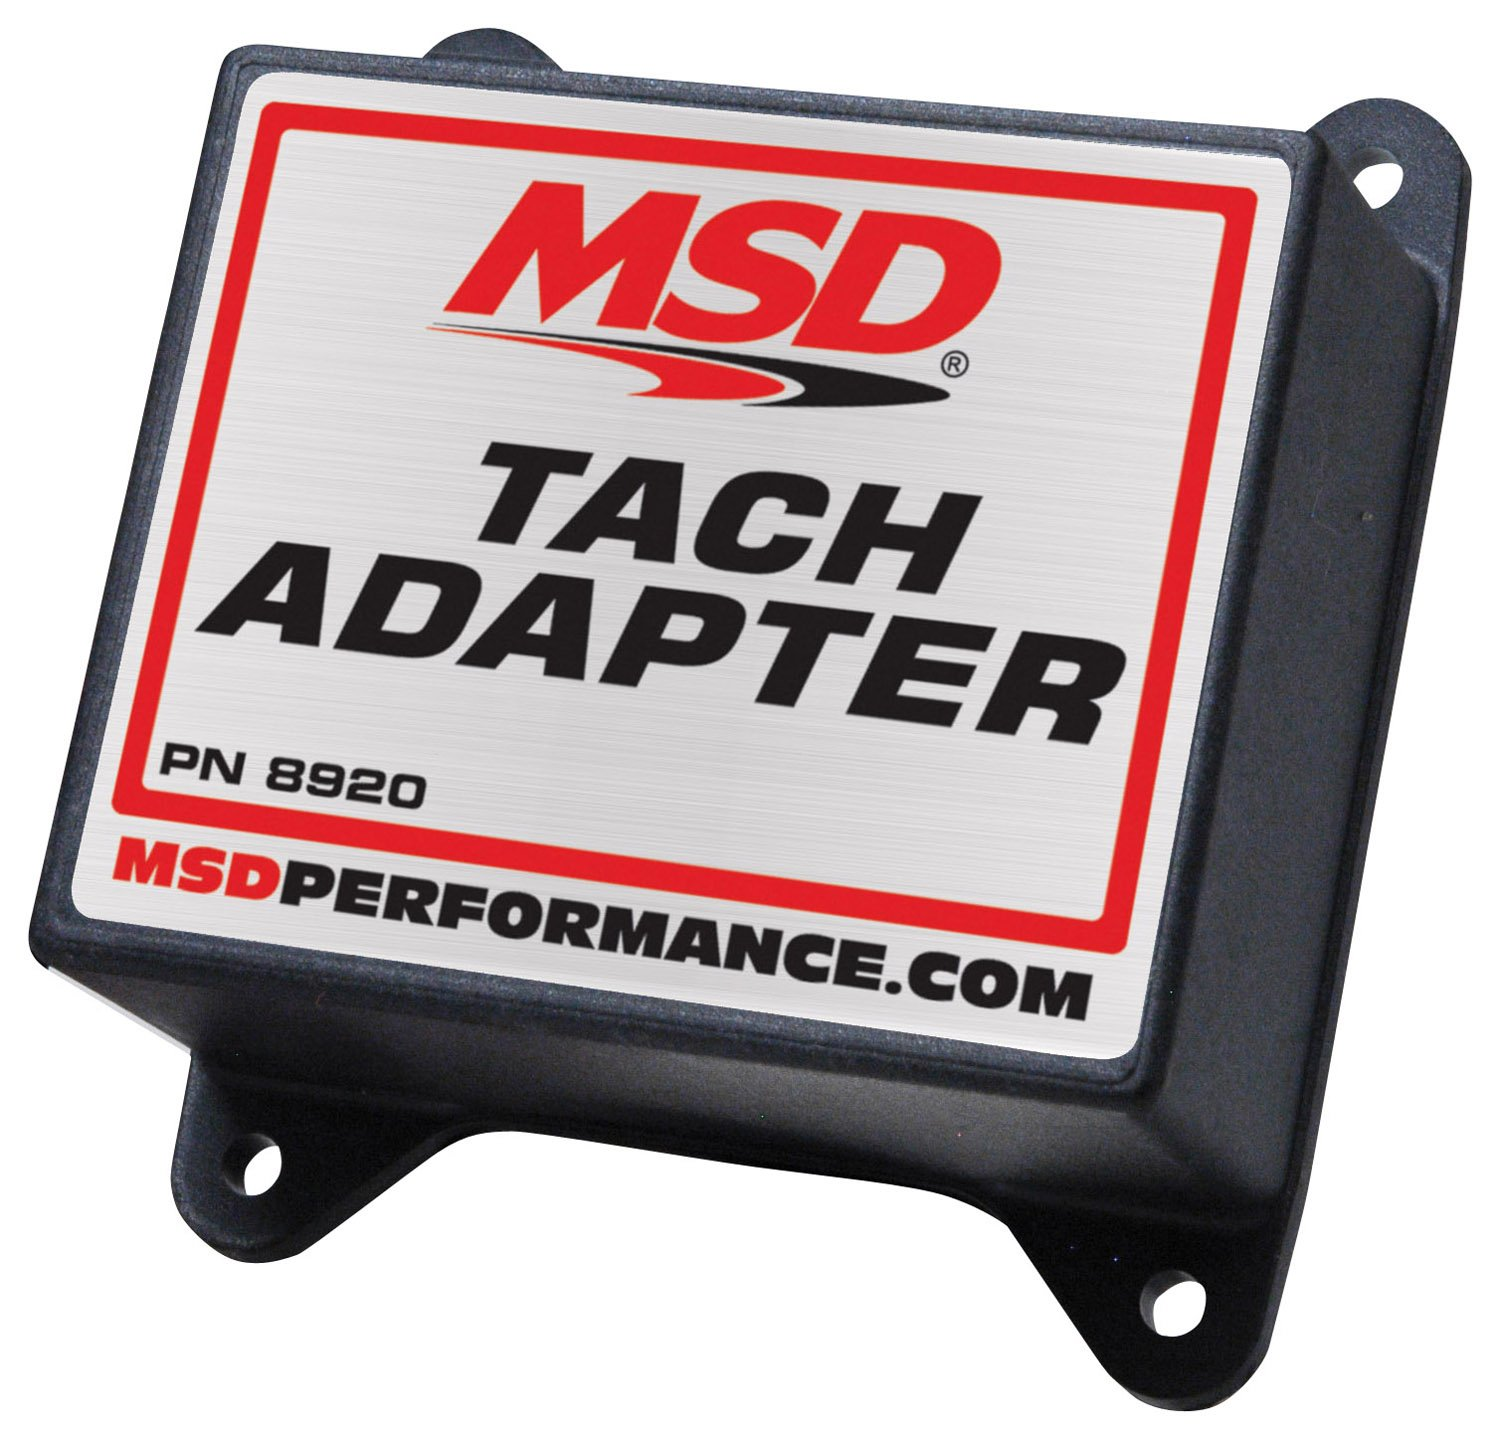 MSD 8920 Tach/Fuel Adapter - MSD Performance Products